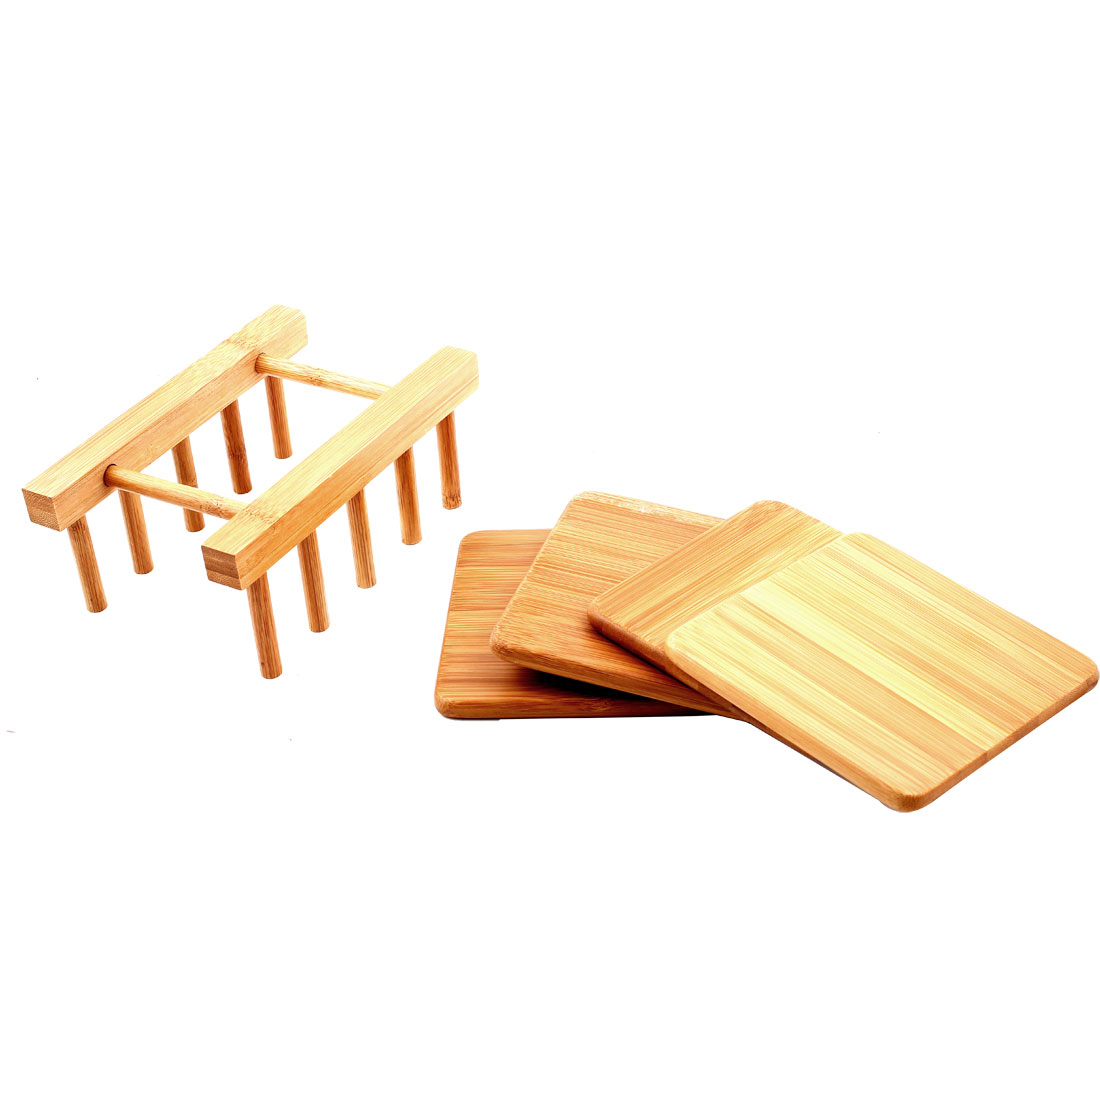 Bamboo Kitchenware Plate Dish Drainer Holder Stand Rack DIY Tool Set